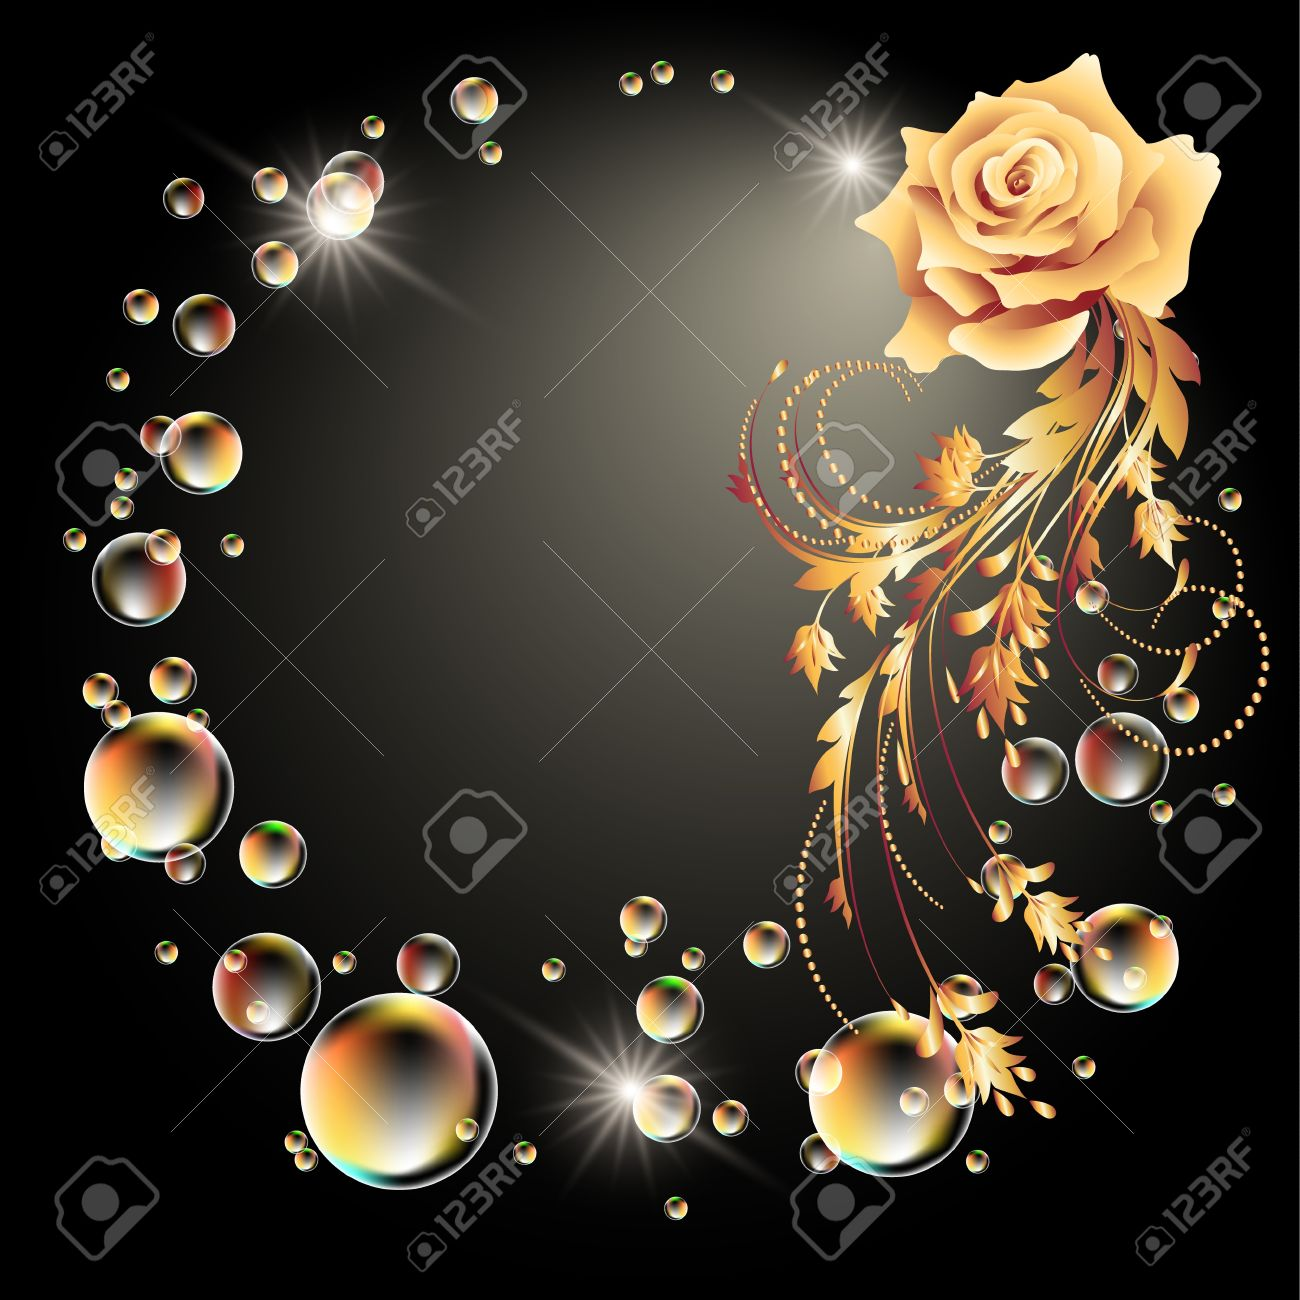 Glowing background with rose, star and bubbles - 14567988